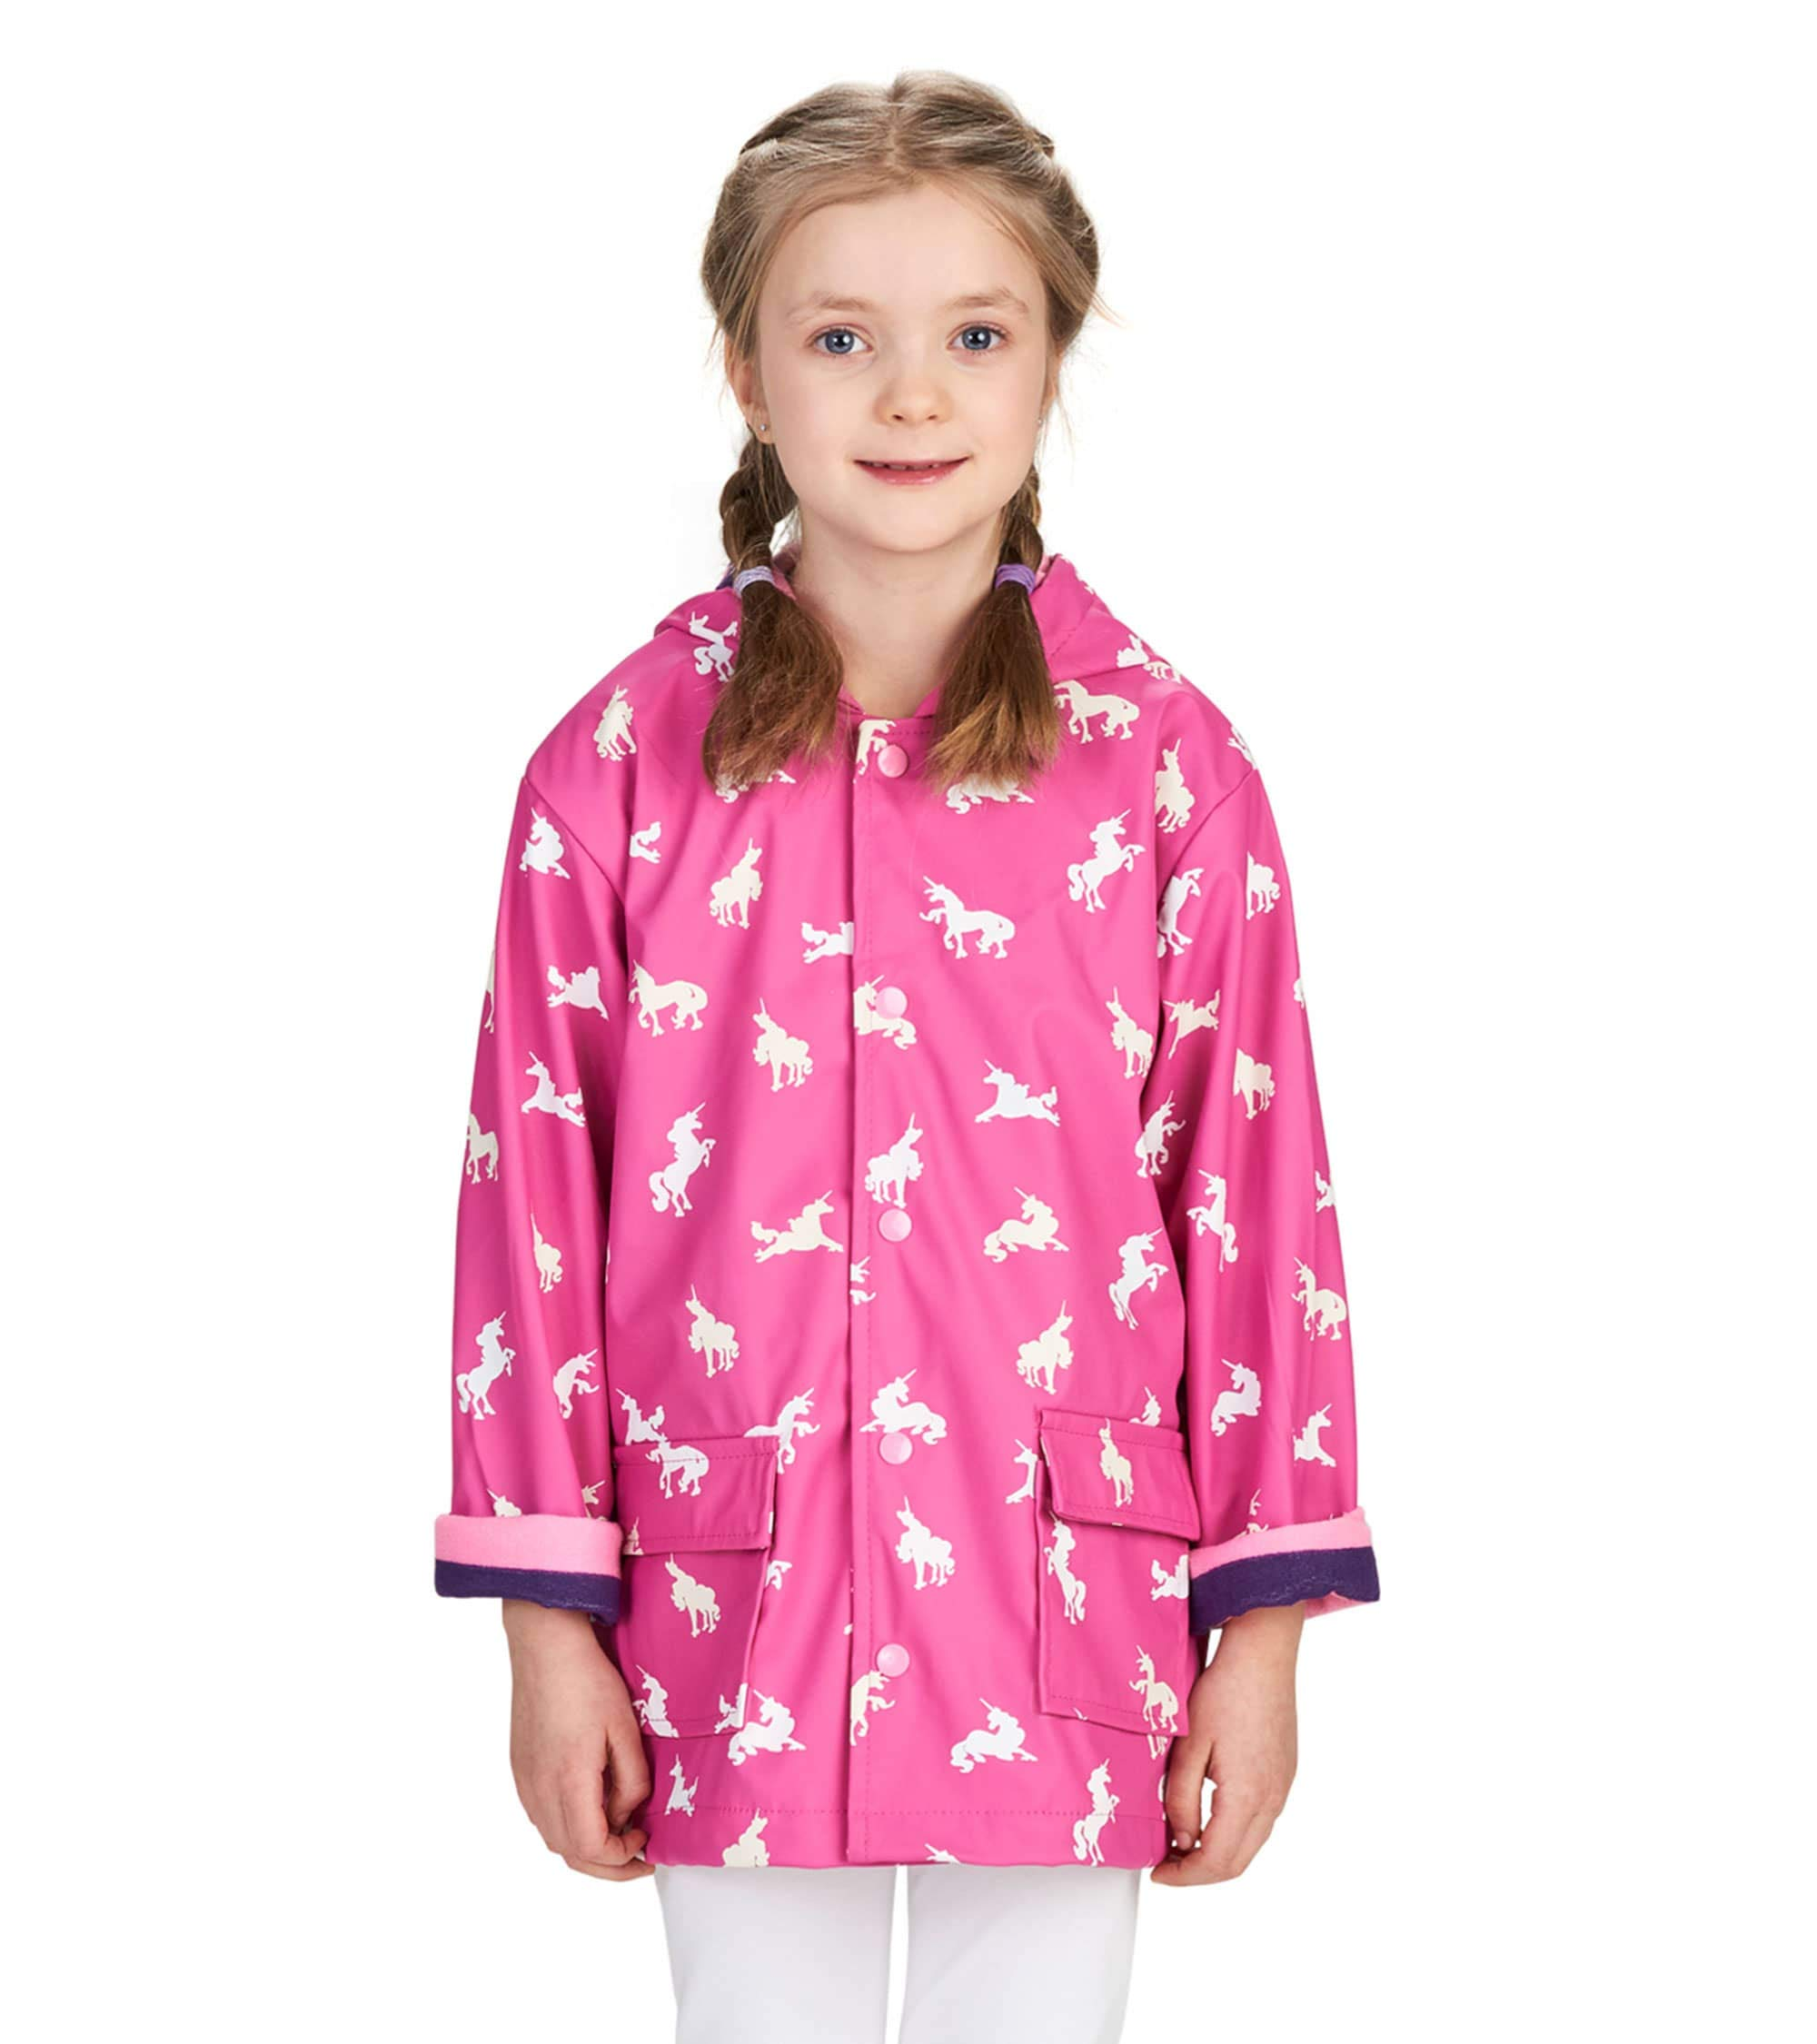 Hatley Girls' Little Printed Raincoats, Colour Changing Unicorn Silhouettes, 2